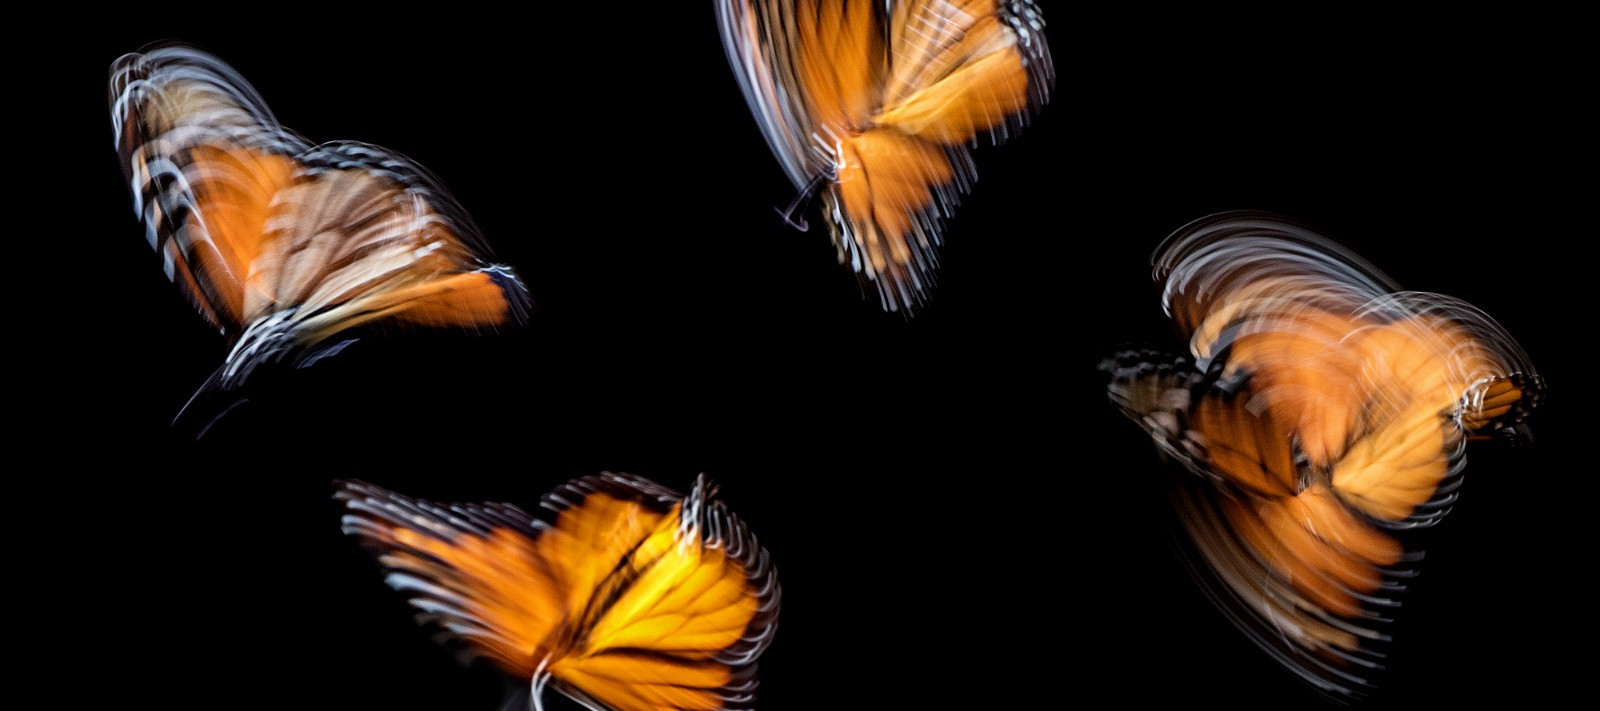 /the-good-and-the-bad-of-flutter-app-development-45f27b1caa36 feature image